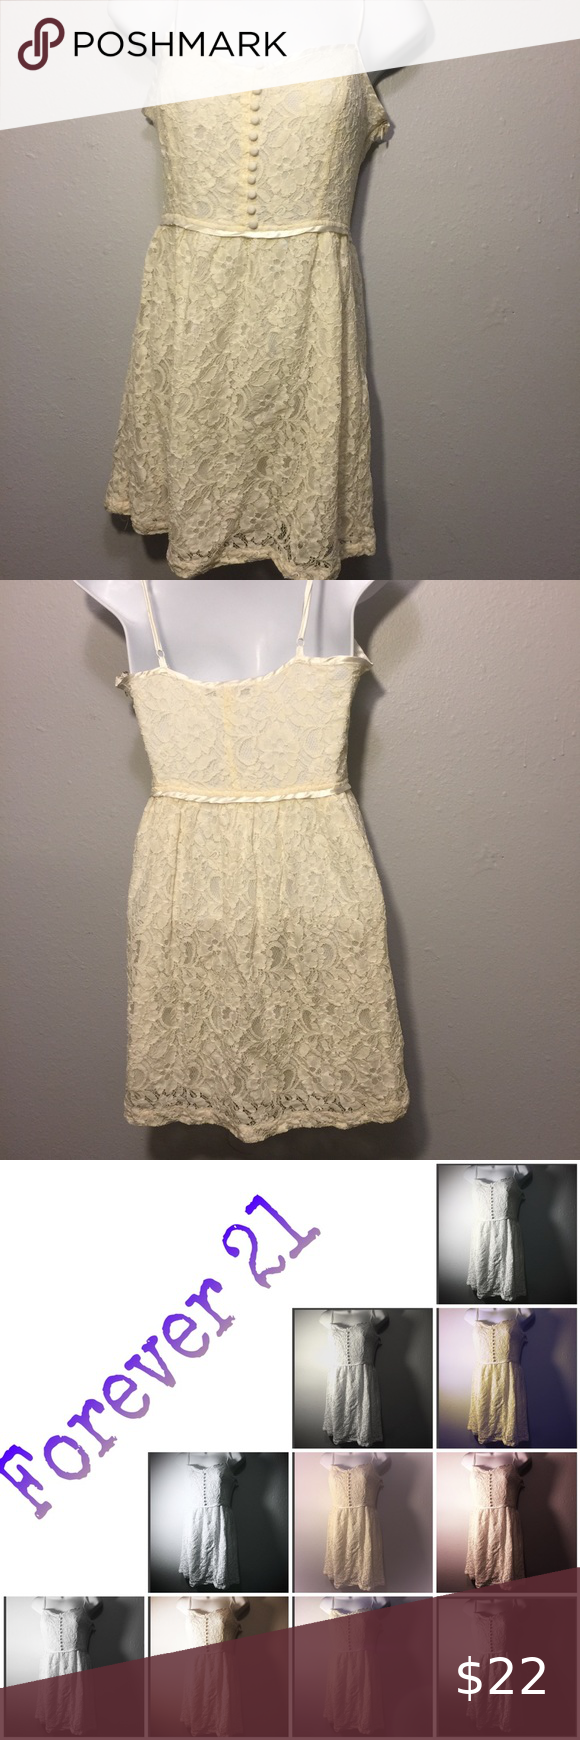 Forever 21 Ivory Lace Midi dress. Small Petite